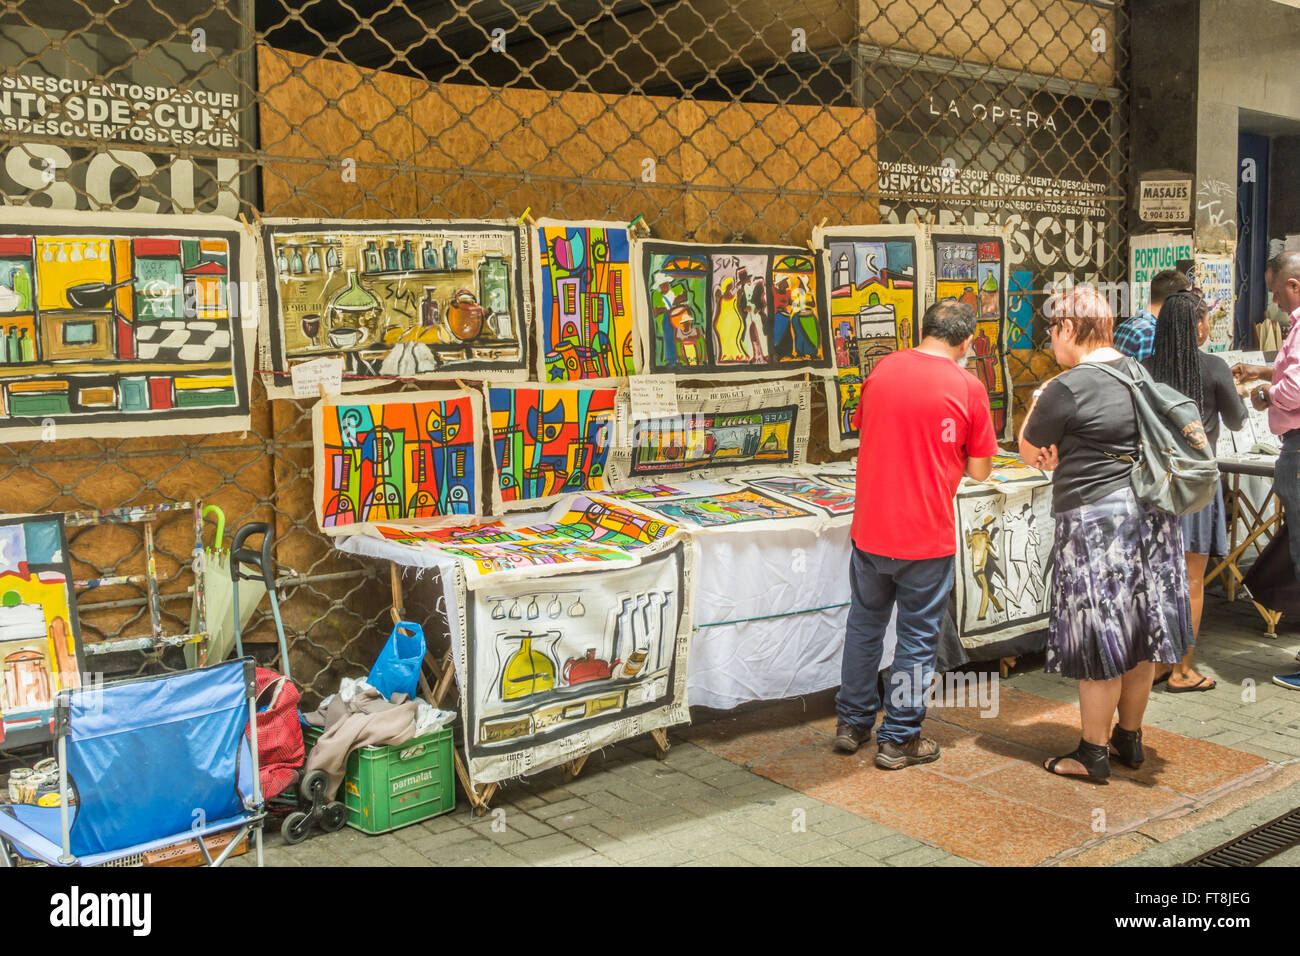 ARTIST SELLING PAINTINGS, MONTIVIDEO, URUGUAY - CIRCA DECEMBER 2015. An artist selling contemporary painting to - Stock Image